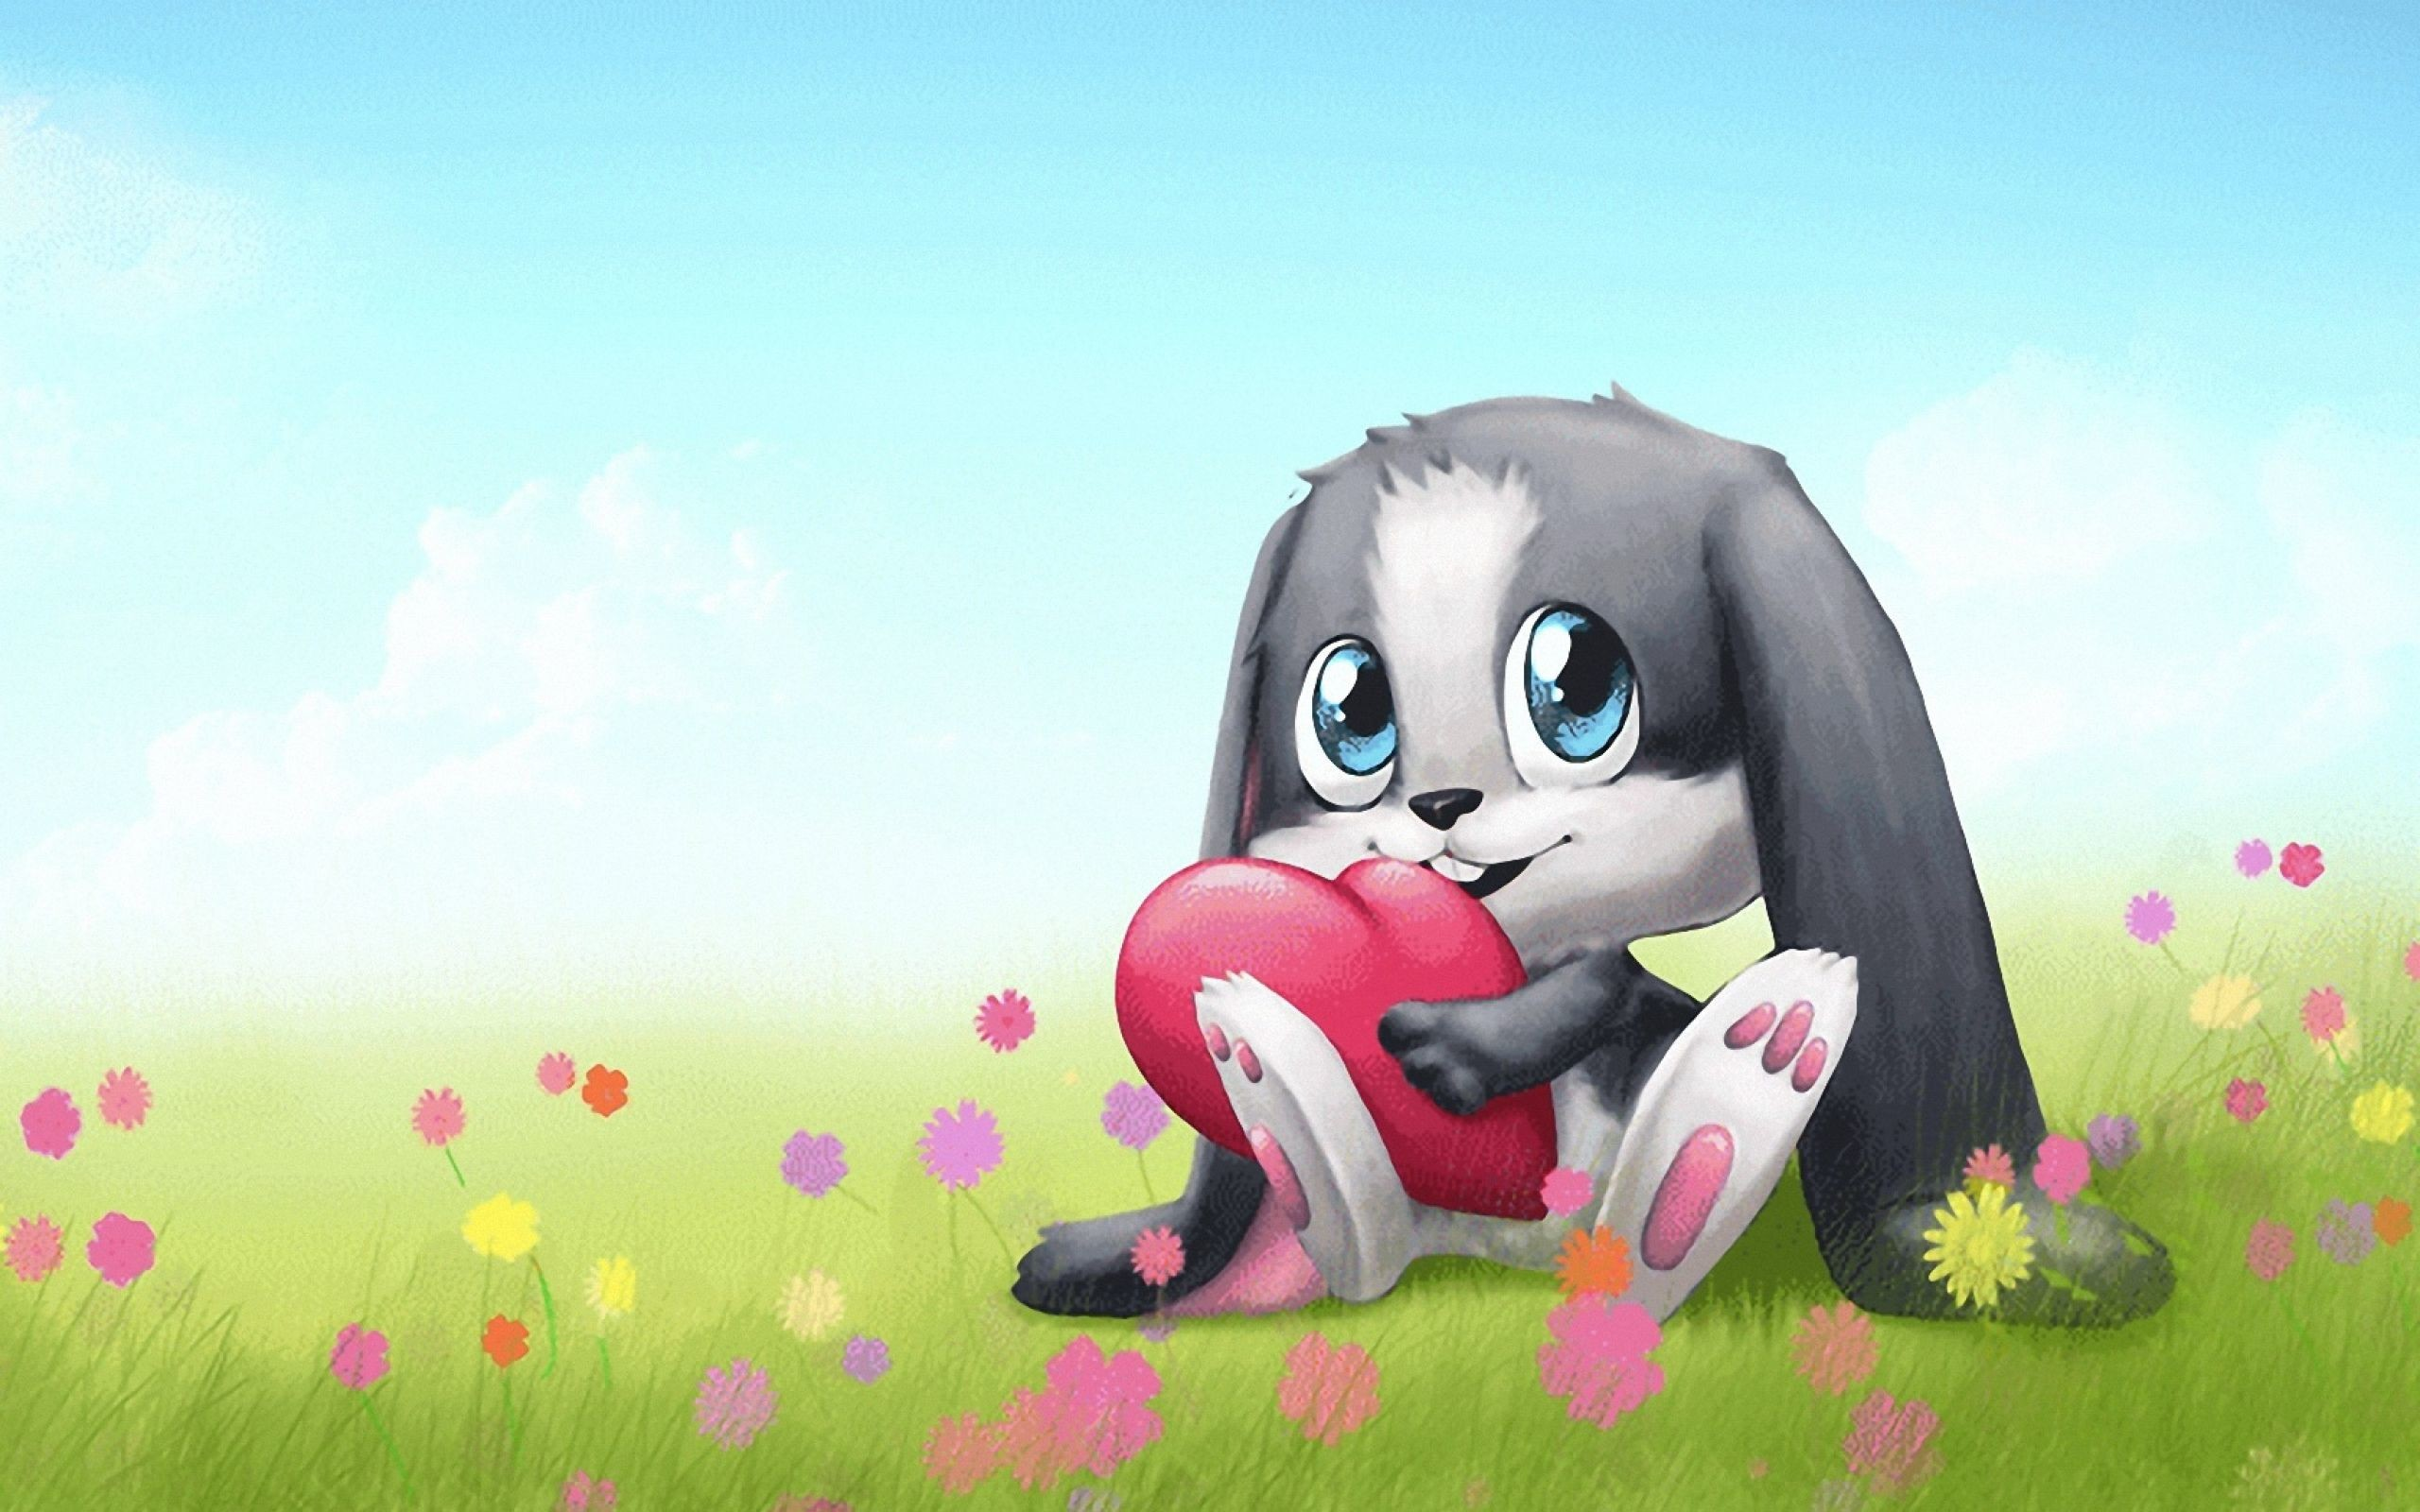 Res: 2560x1600, Amazing Cartoon HD Wallpapers High Quality.